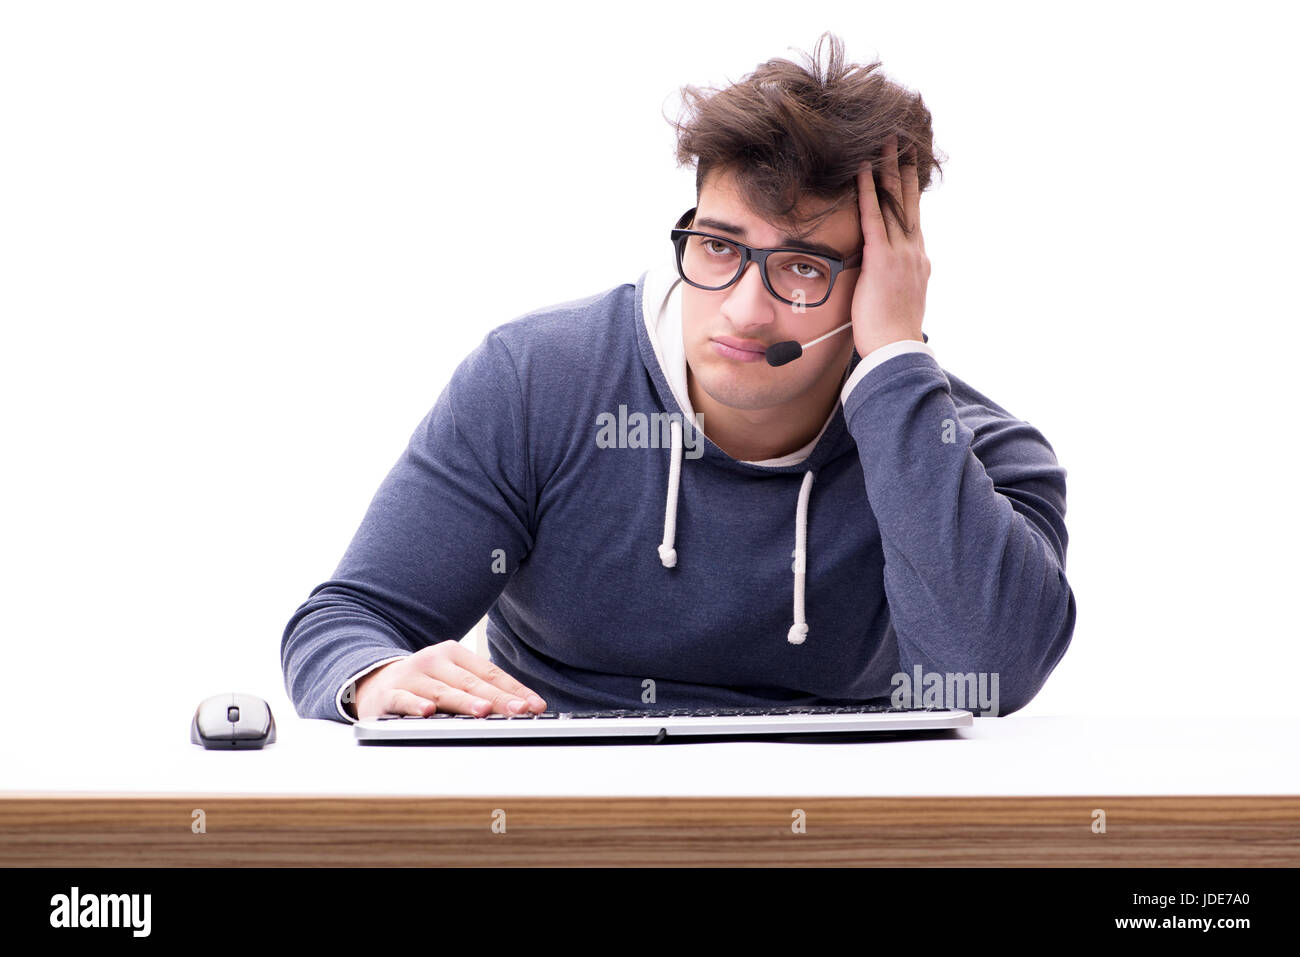 Hacker isolated on the white background - Stock Image